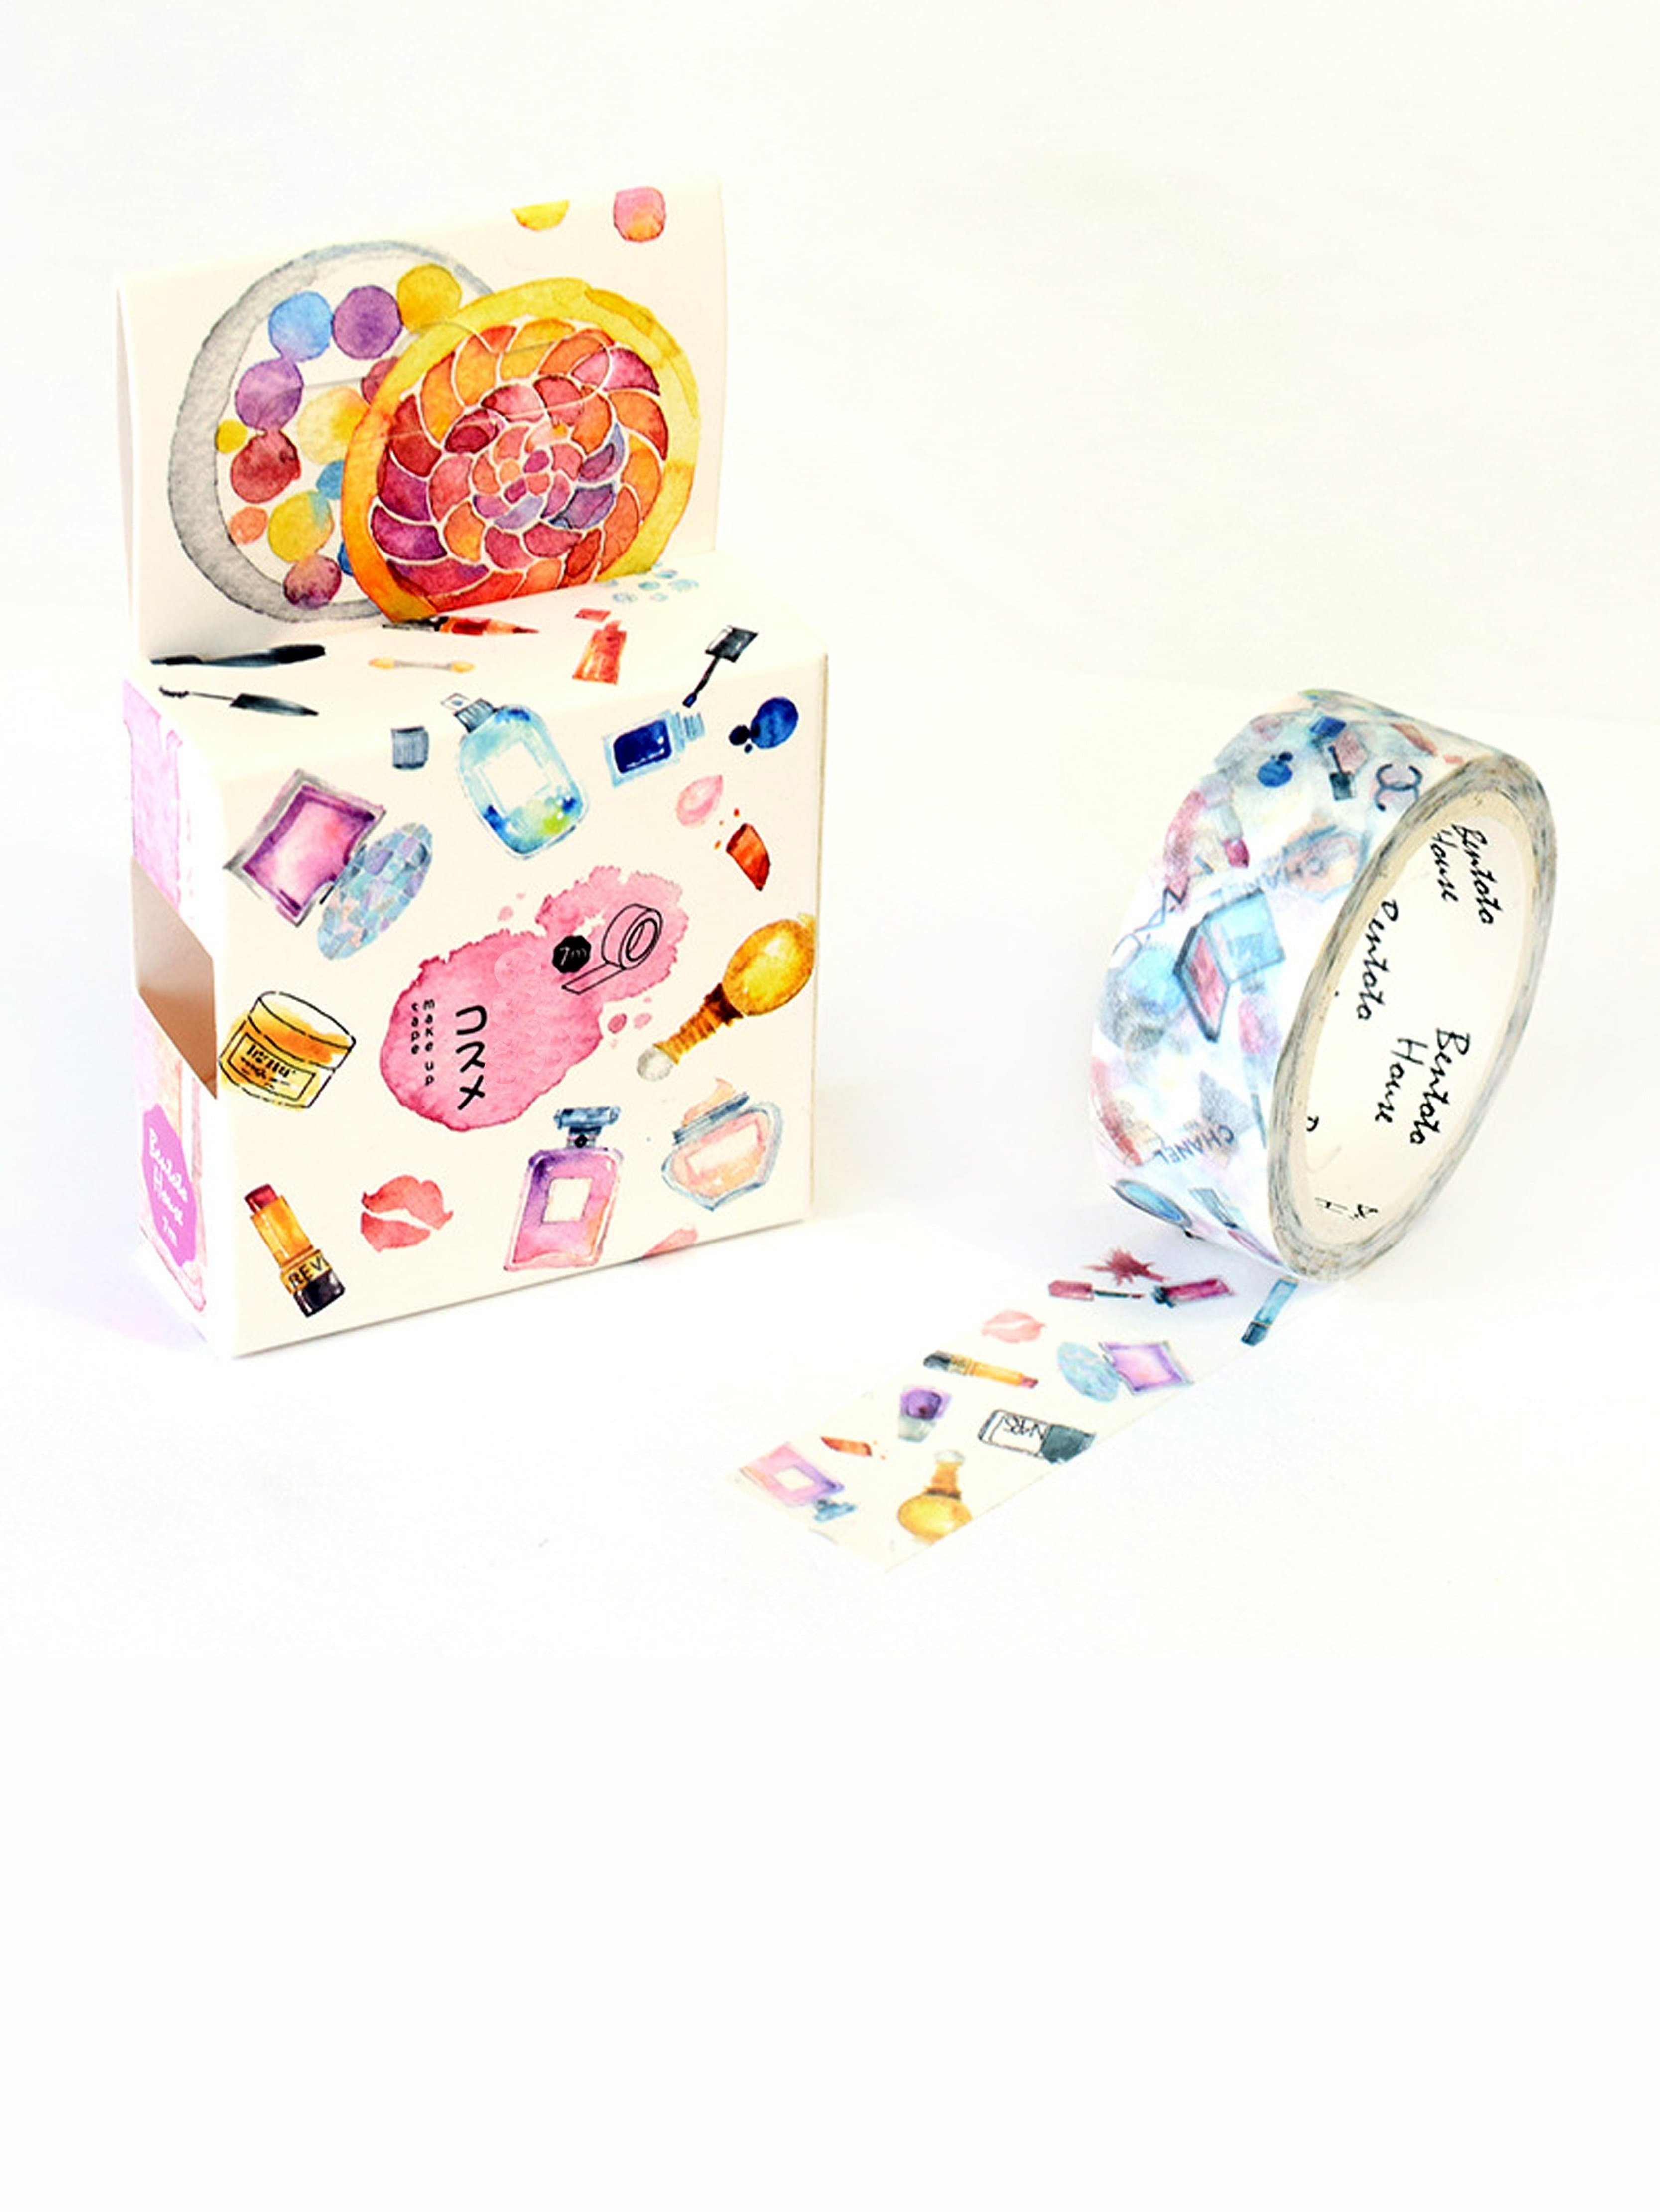 Makeup Tools Pattern Masking Tape 1 x golden slim decoration 8 mm x 7 m kawaii washi tape children diy diary decoration masking tape stationery scrapbooking tools